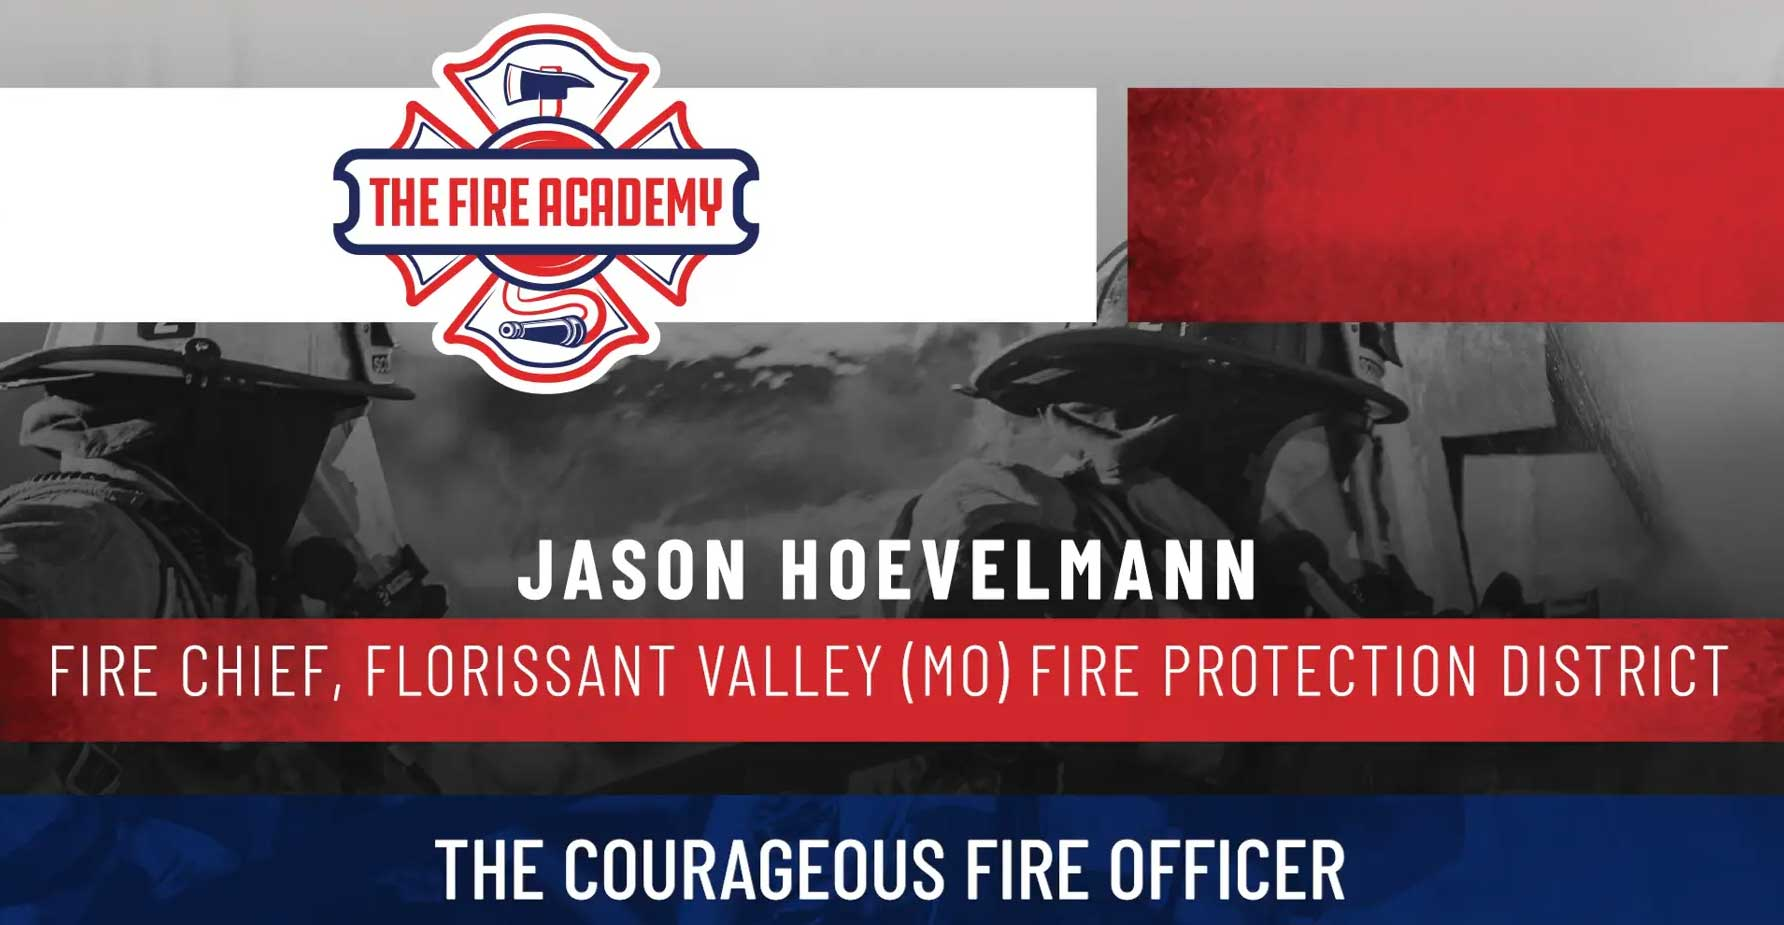 The Courageous Fire Officer